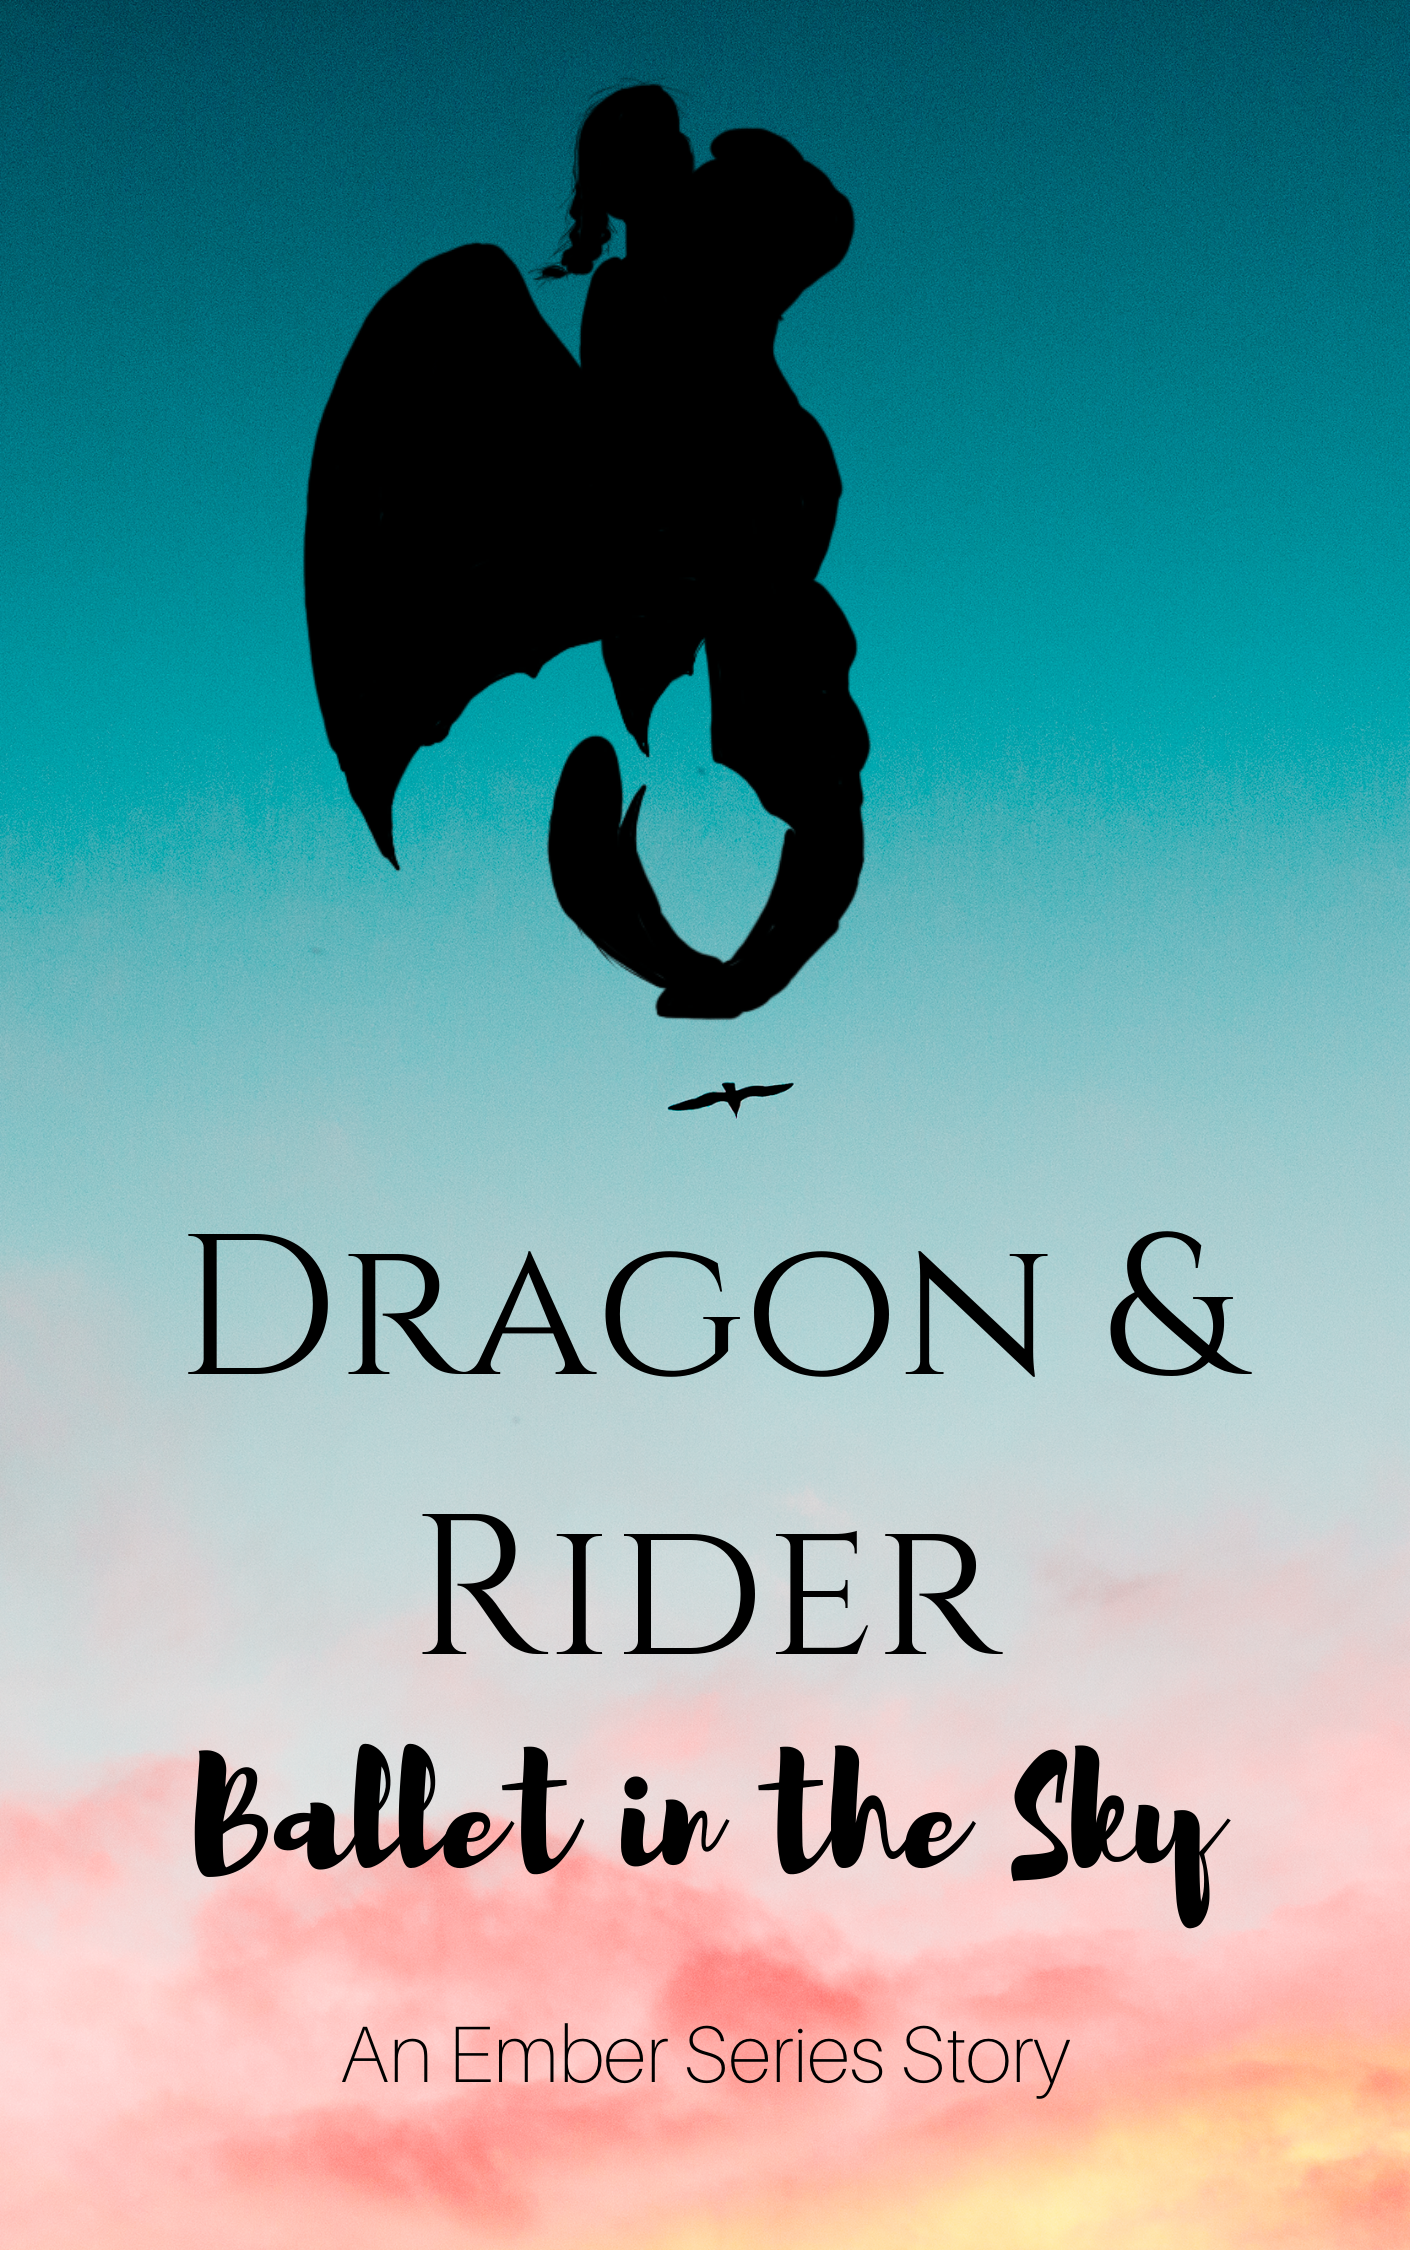 Dragon & Rider: Ballet in the Sky